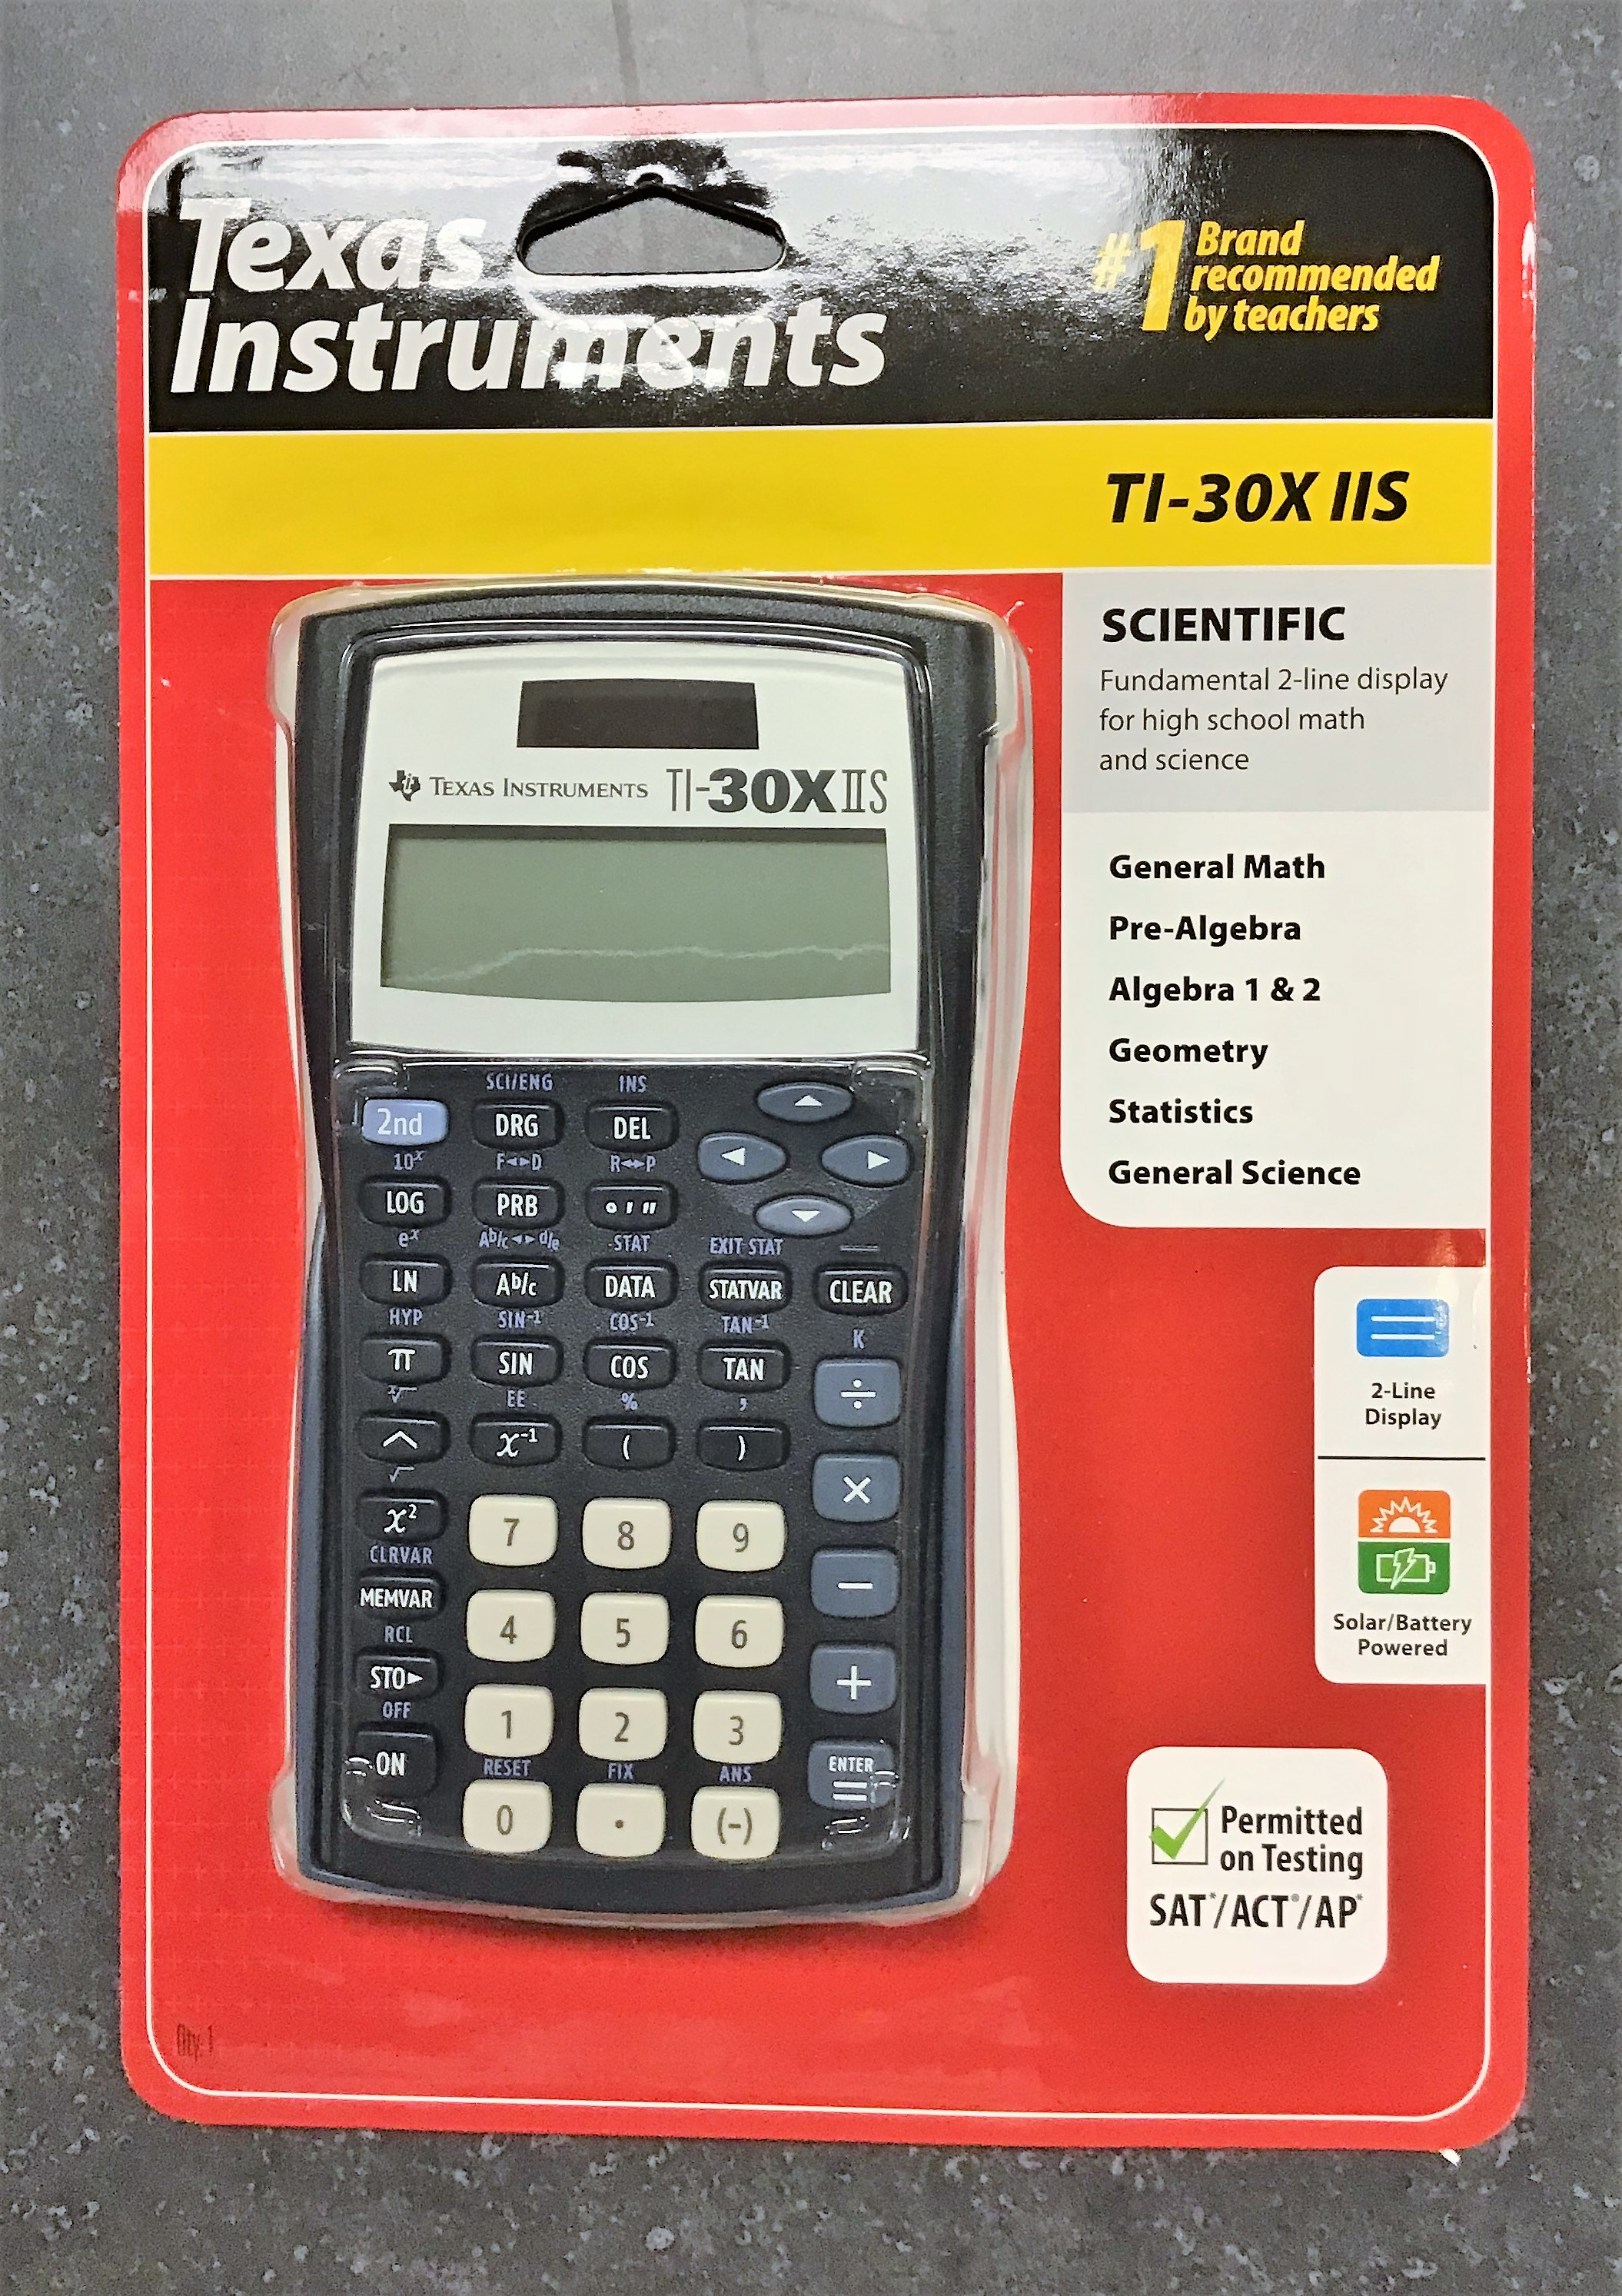 Image for the Texas Instruments Scientific Calculator, TI-30X IIS, 2-Line Display, Solar and Battery Powered, 000096899 product